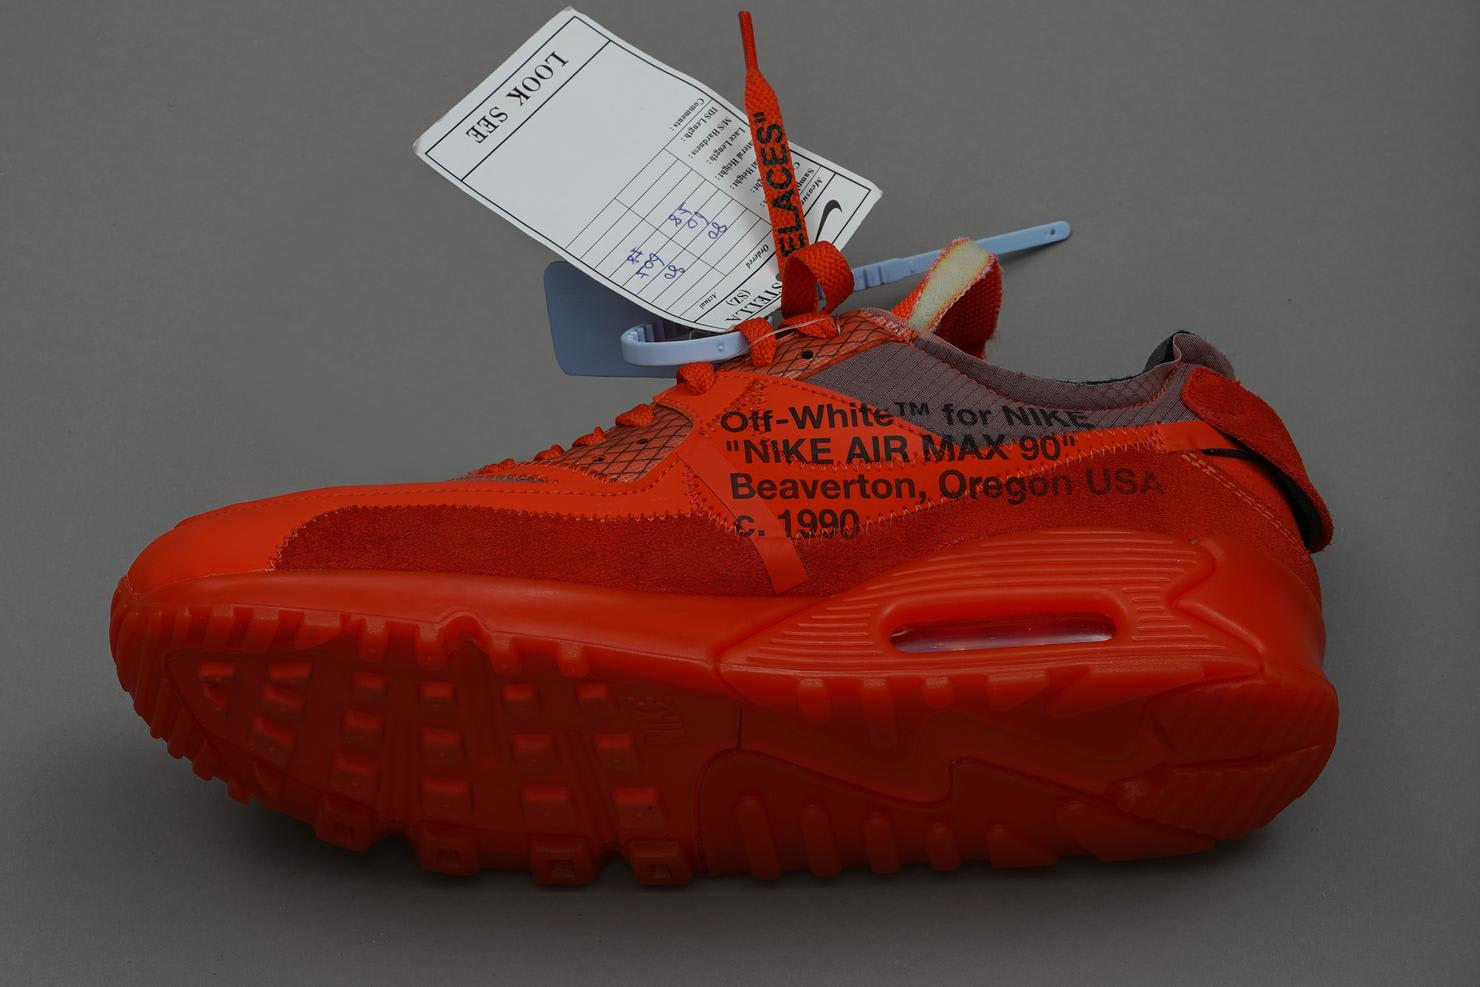 Off-White x Nike Air Max 90 Prototype